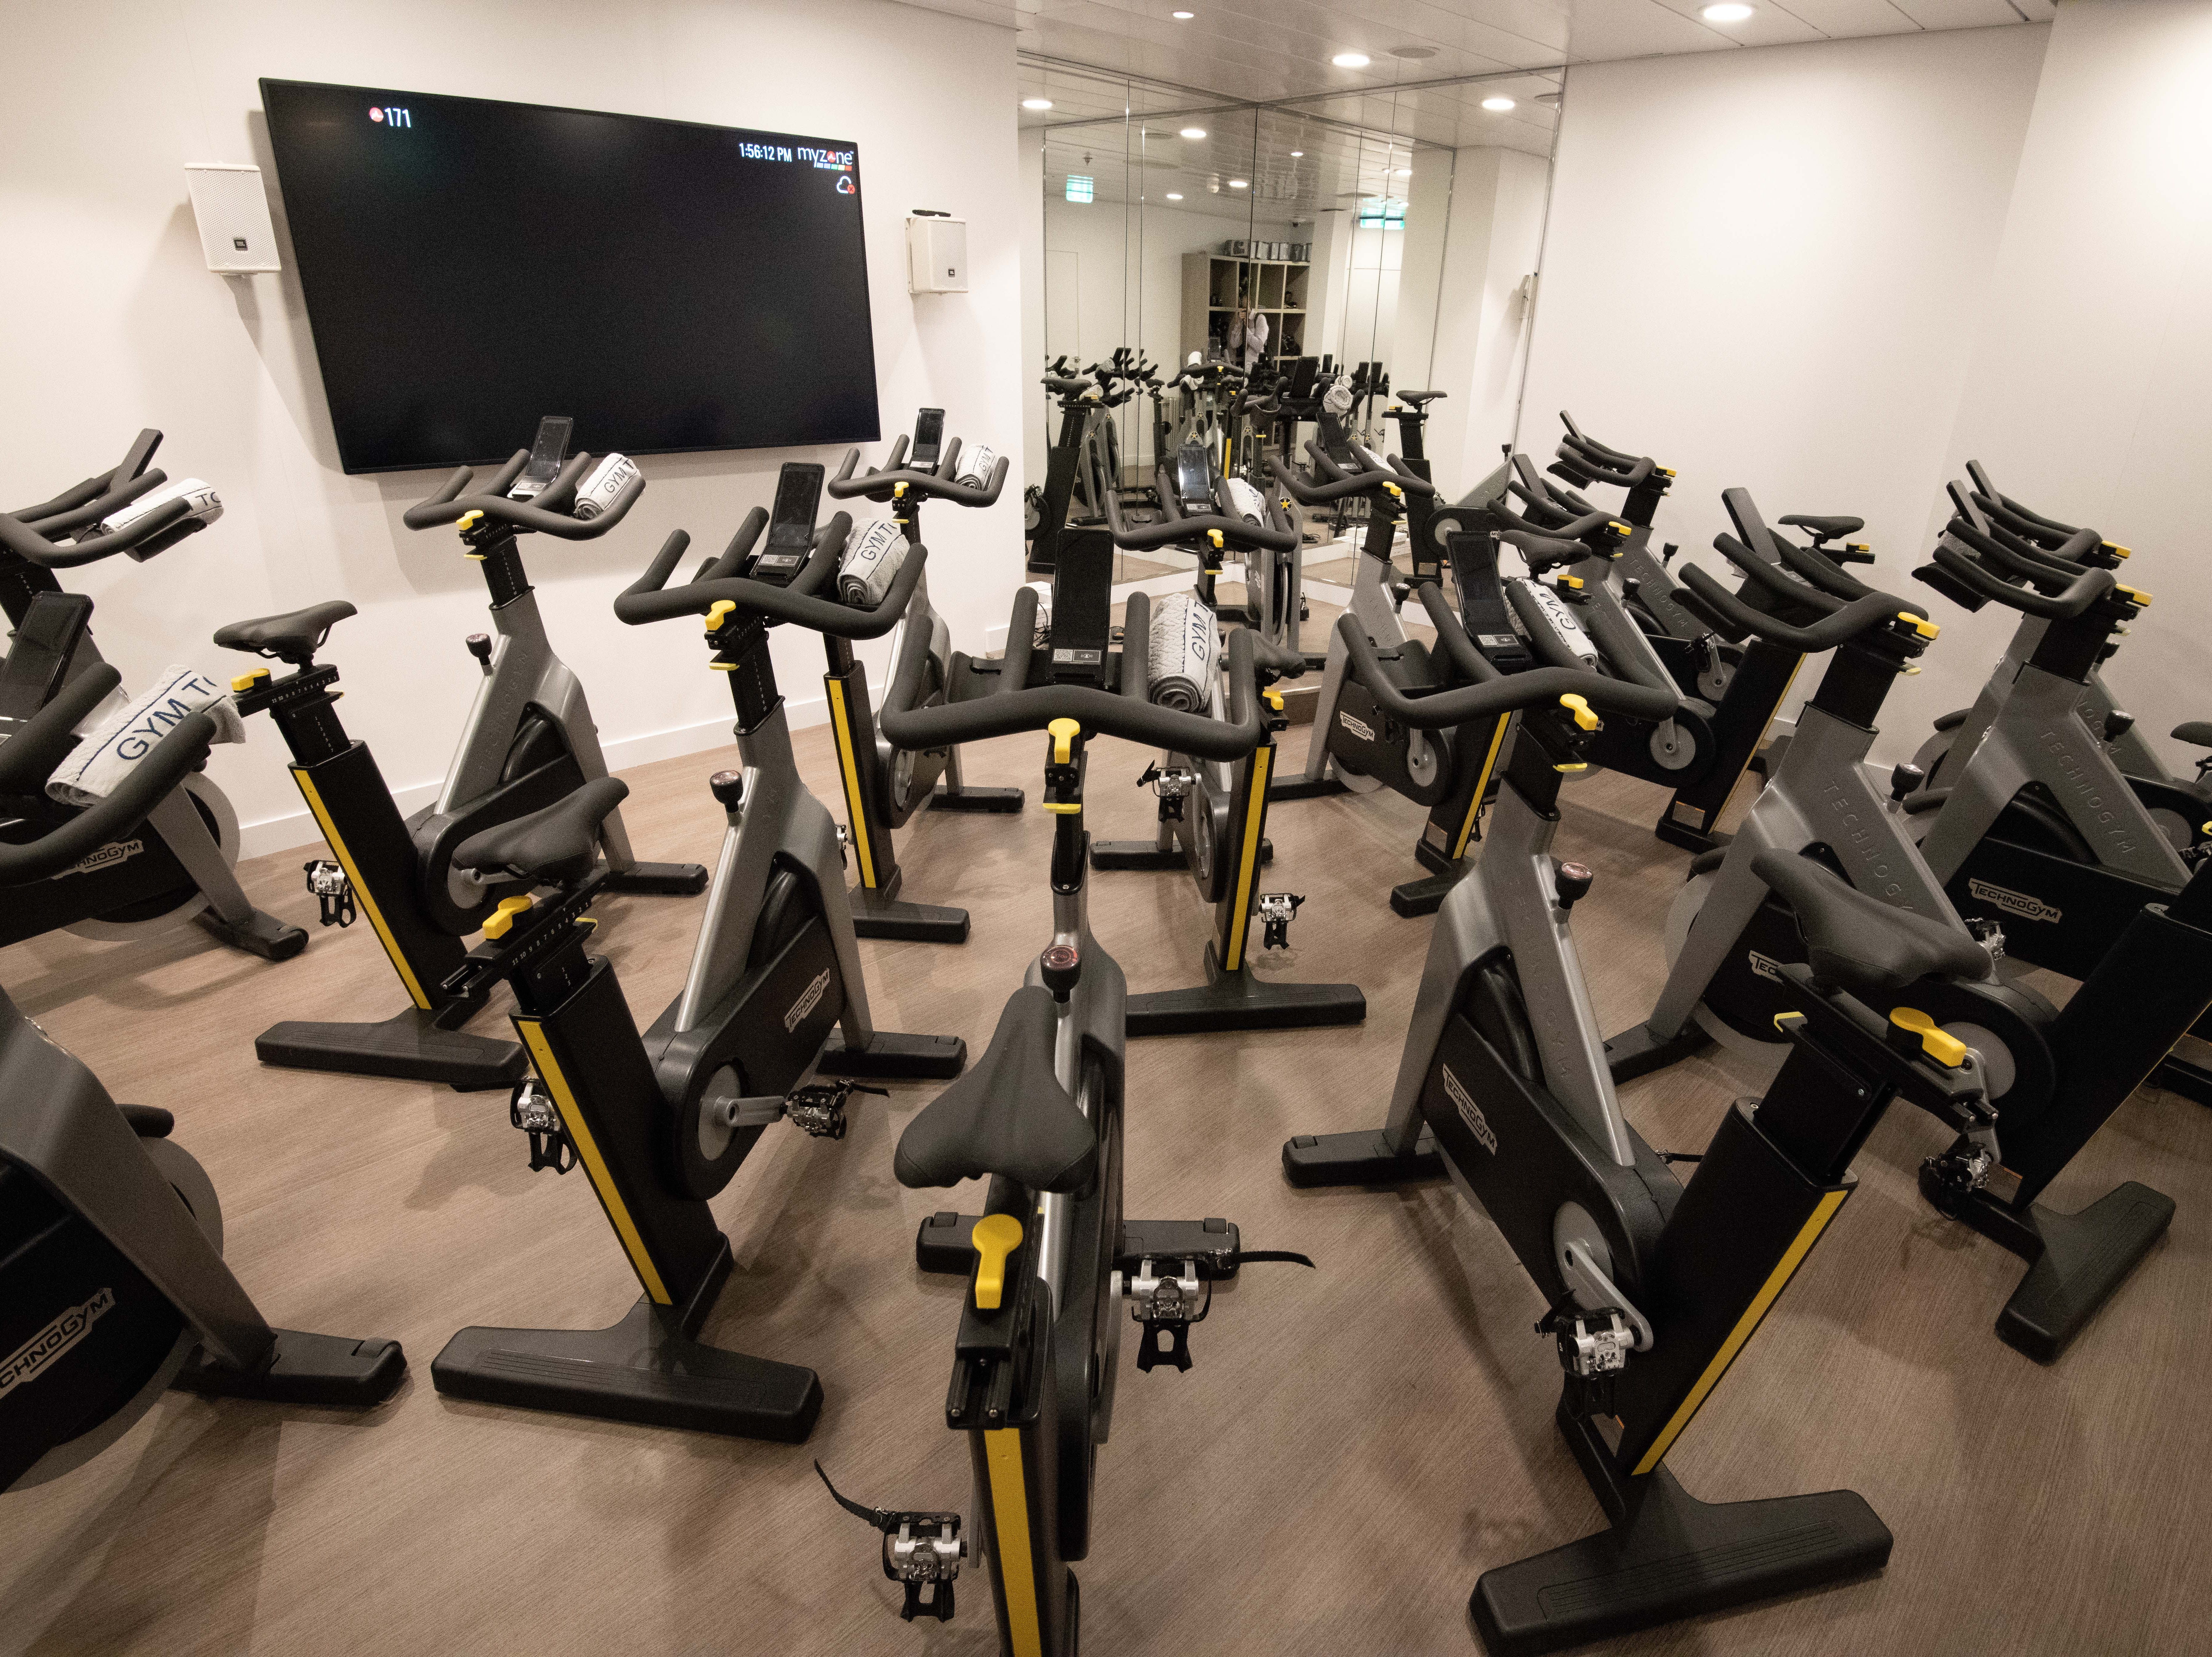 A second motion studio in the Fitness Center is set up for cycling classes.